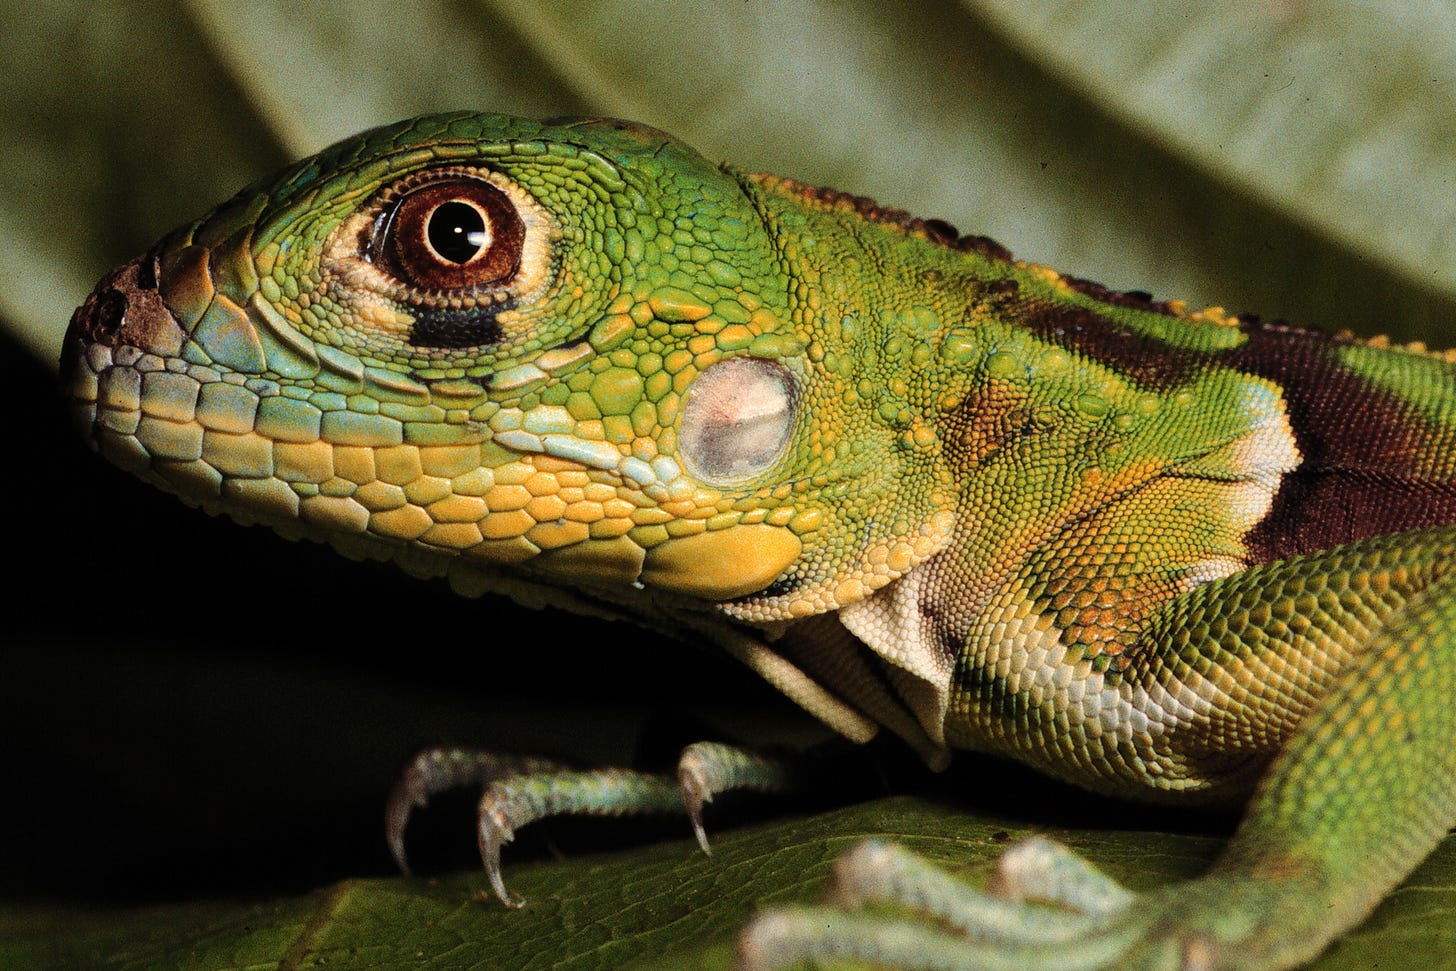 Lizards are real. Lizard people are not.